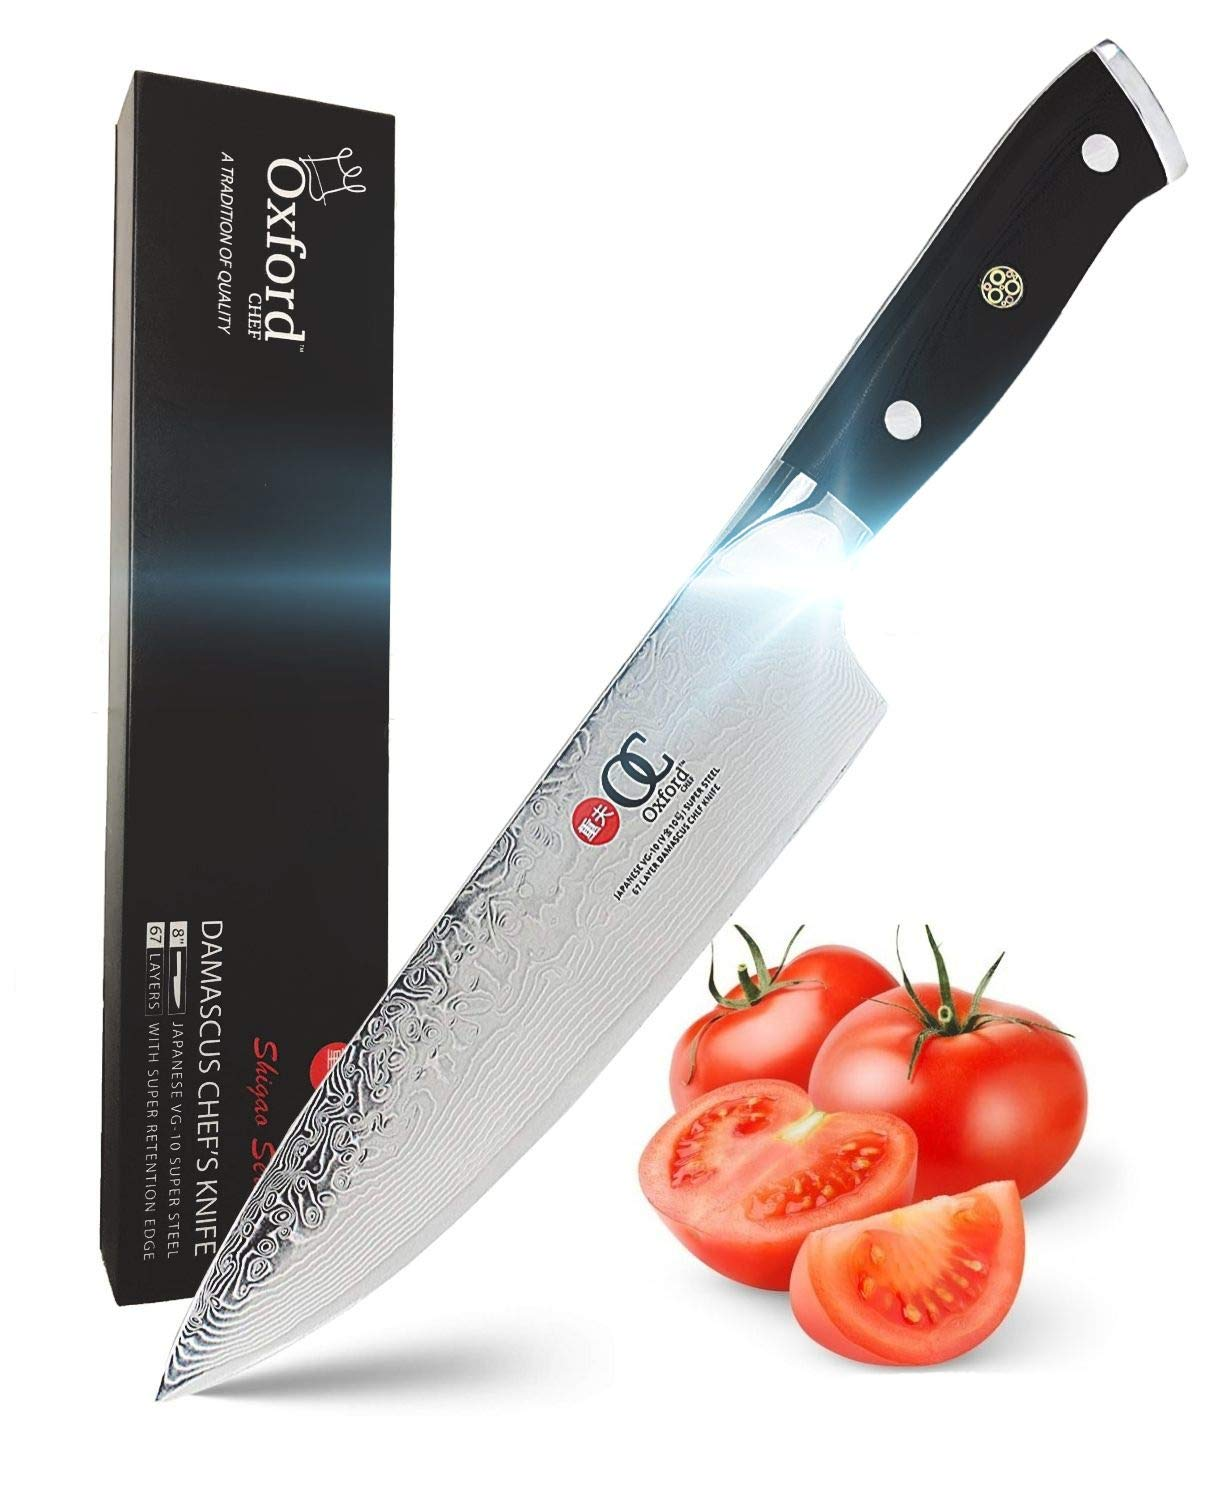 Chefs Knife 8 inch By Oxford Chef - Best Quality Damascus- Japanese- VG10 Super Steel 67 Layer High Carbon Stainless Steel-Razor Sharp, Stain & Corrosion Resistant, Awesome Edge Retention by Oxford CHEF